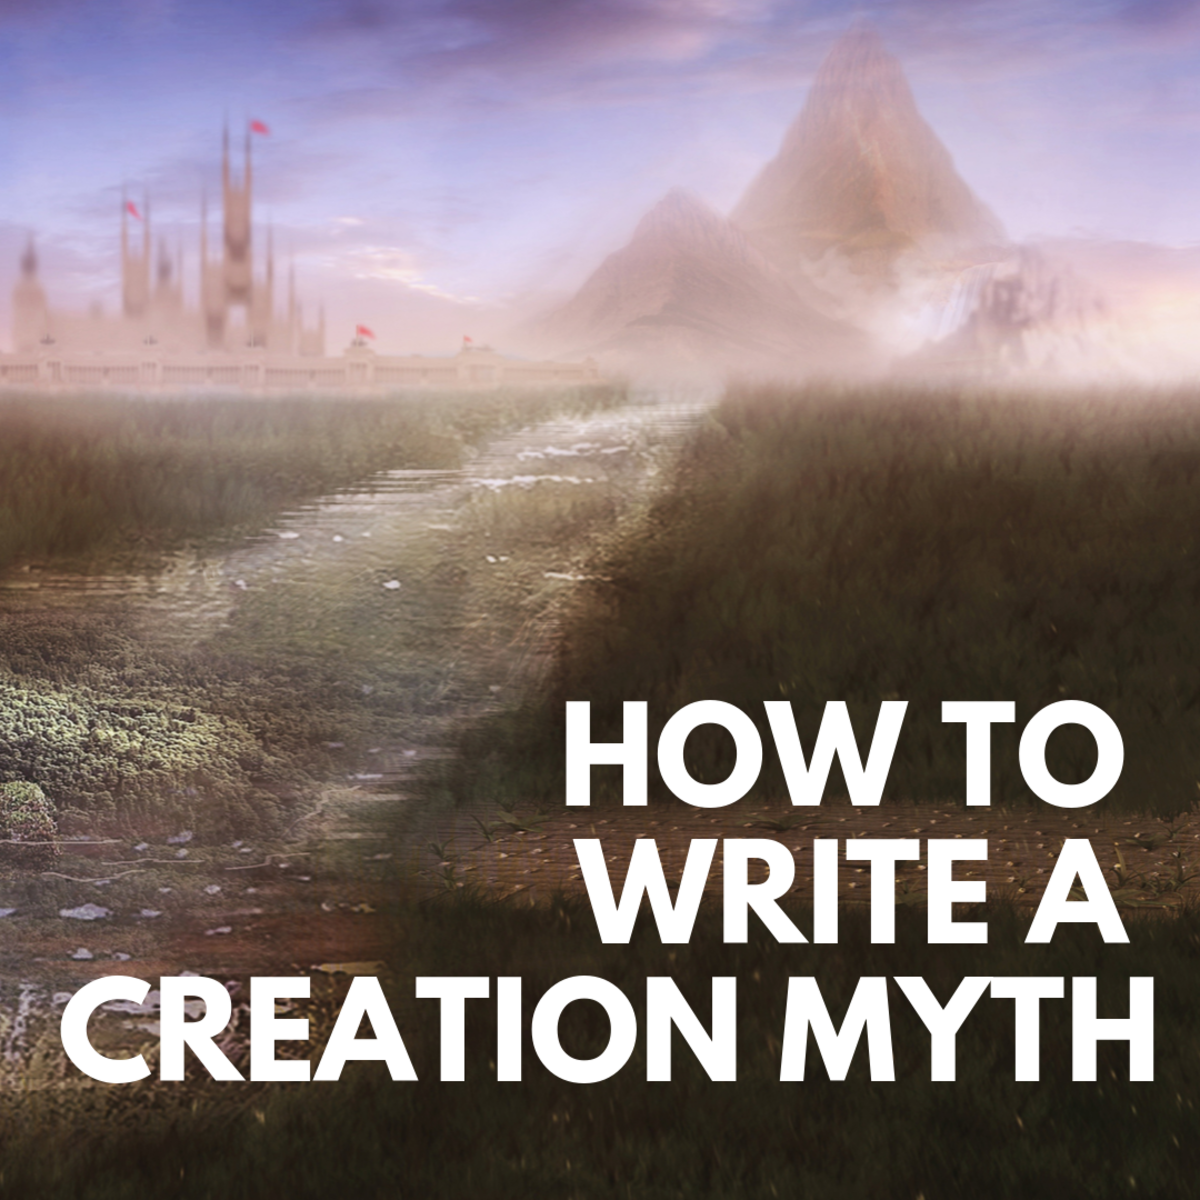 How to Write a Creation Myth